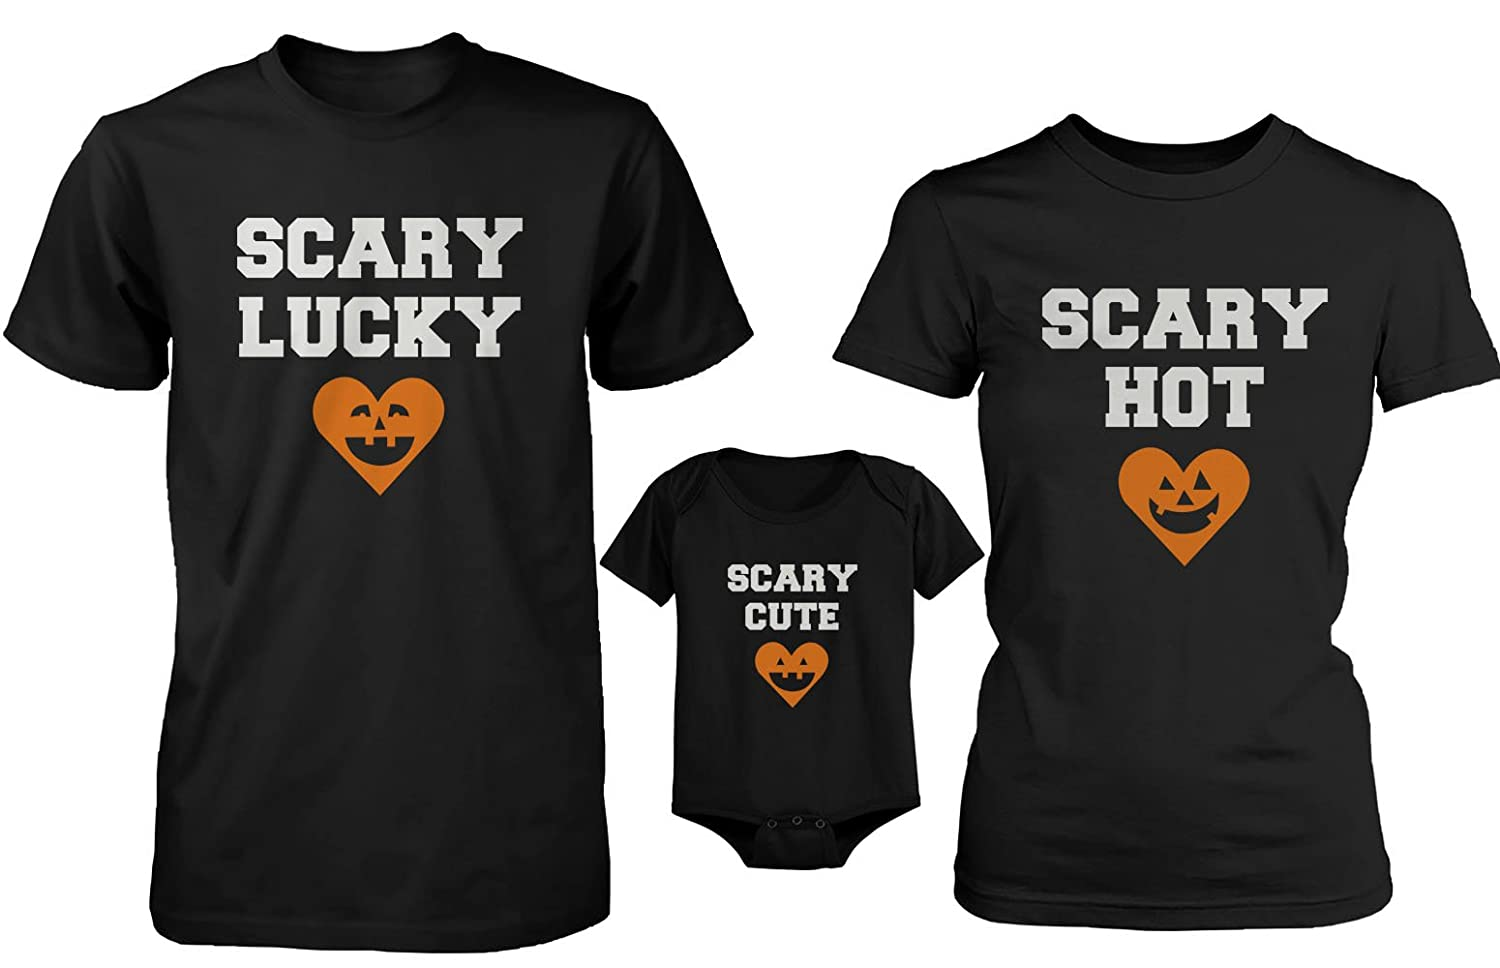 Black t shirt for babies - Amazon Com Daddy Or Mommy Or Baby Family Matching T Shirt And Onesie Heart Pumpkin Family Clothing